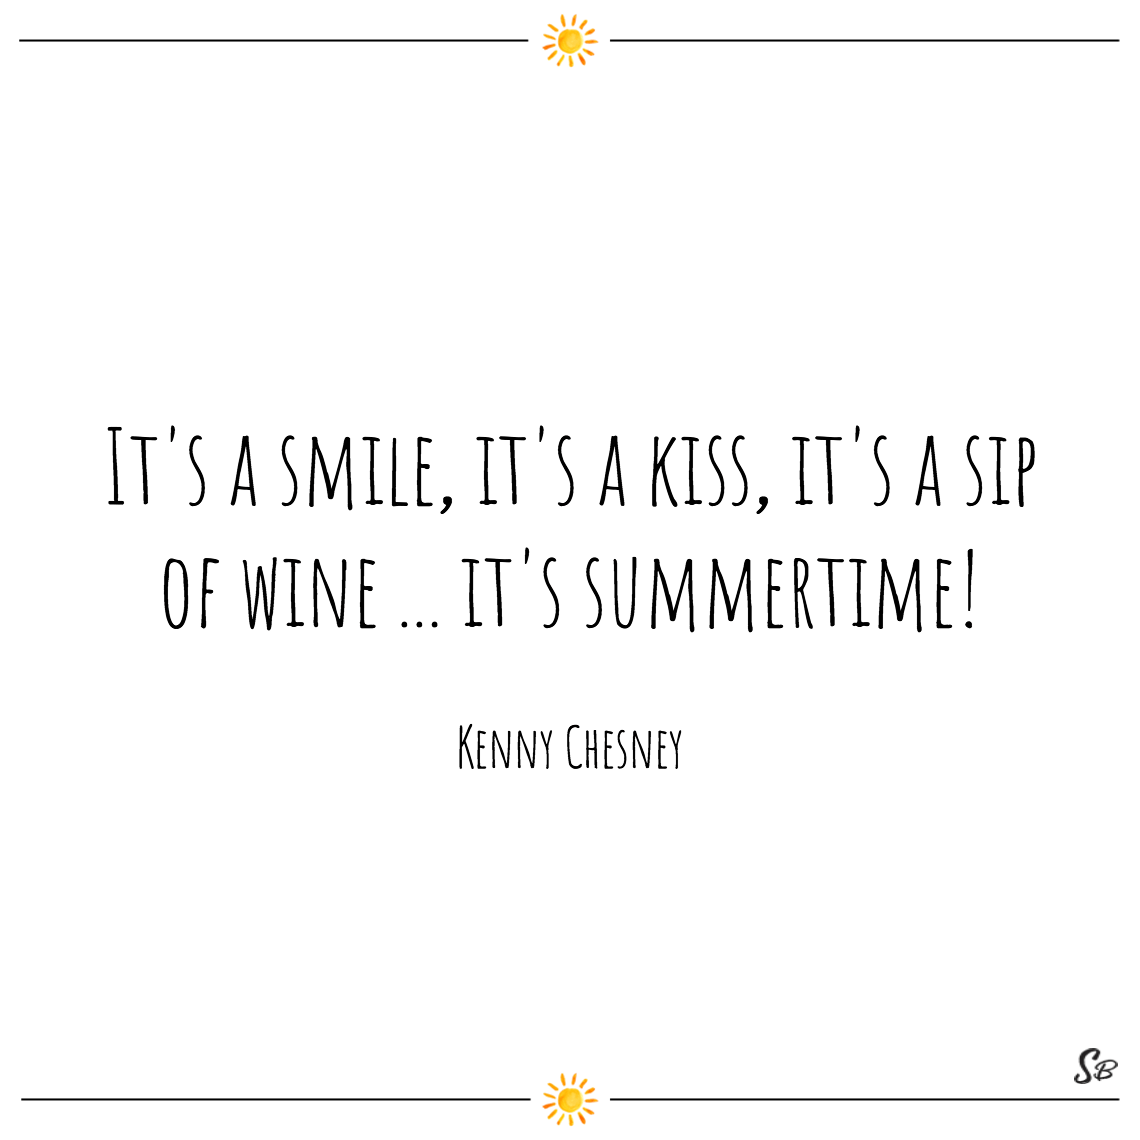 It's a smile, it's a kiss, it's a sip of wine ... it's summertime! kenny chesney